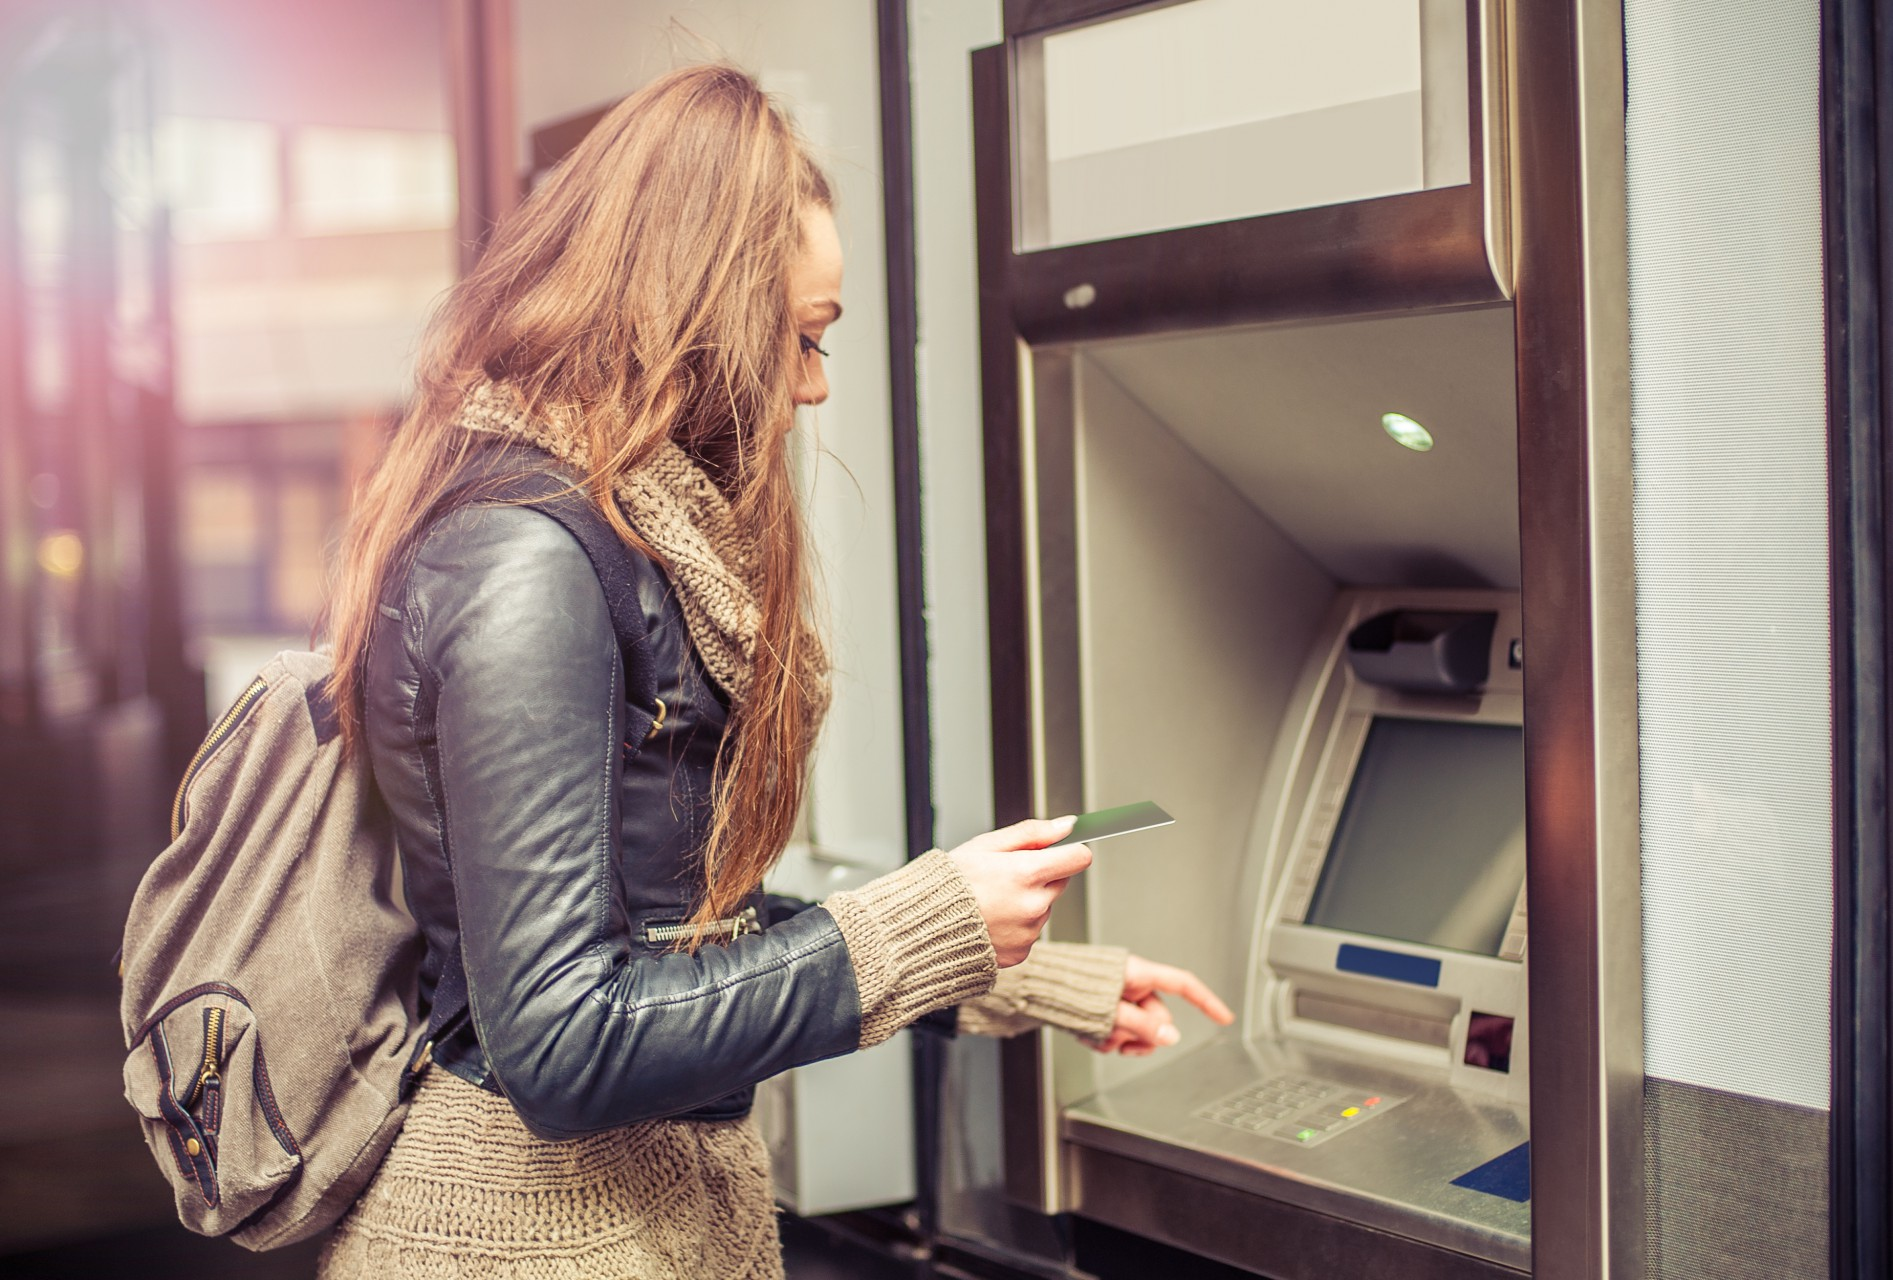 Young woman withdrawing money from debit card at ATM